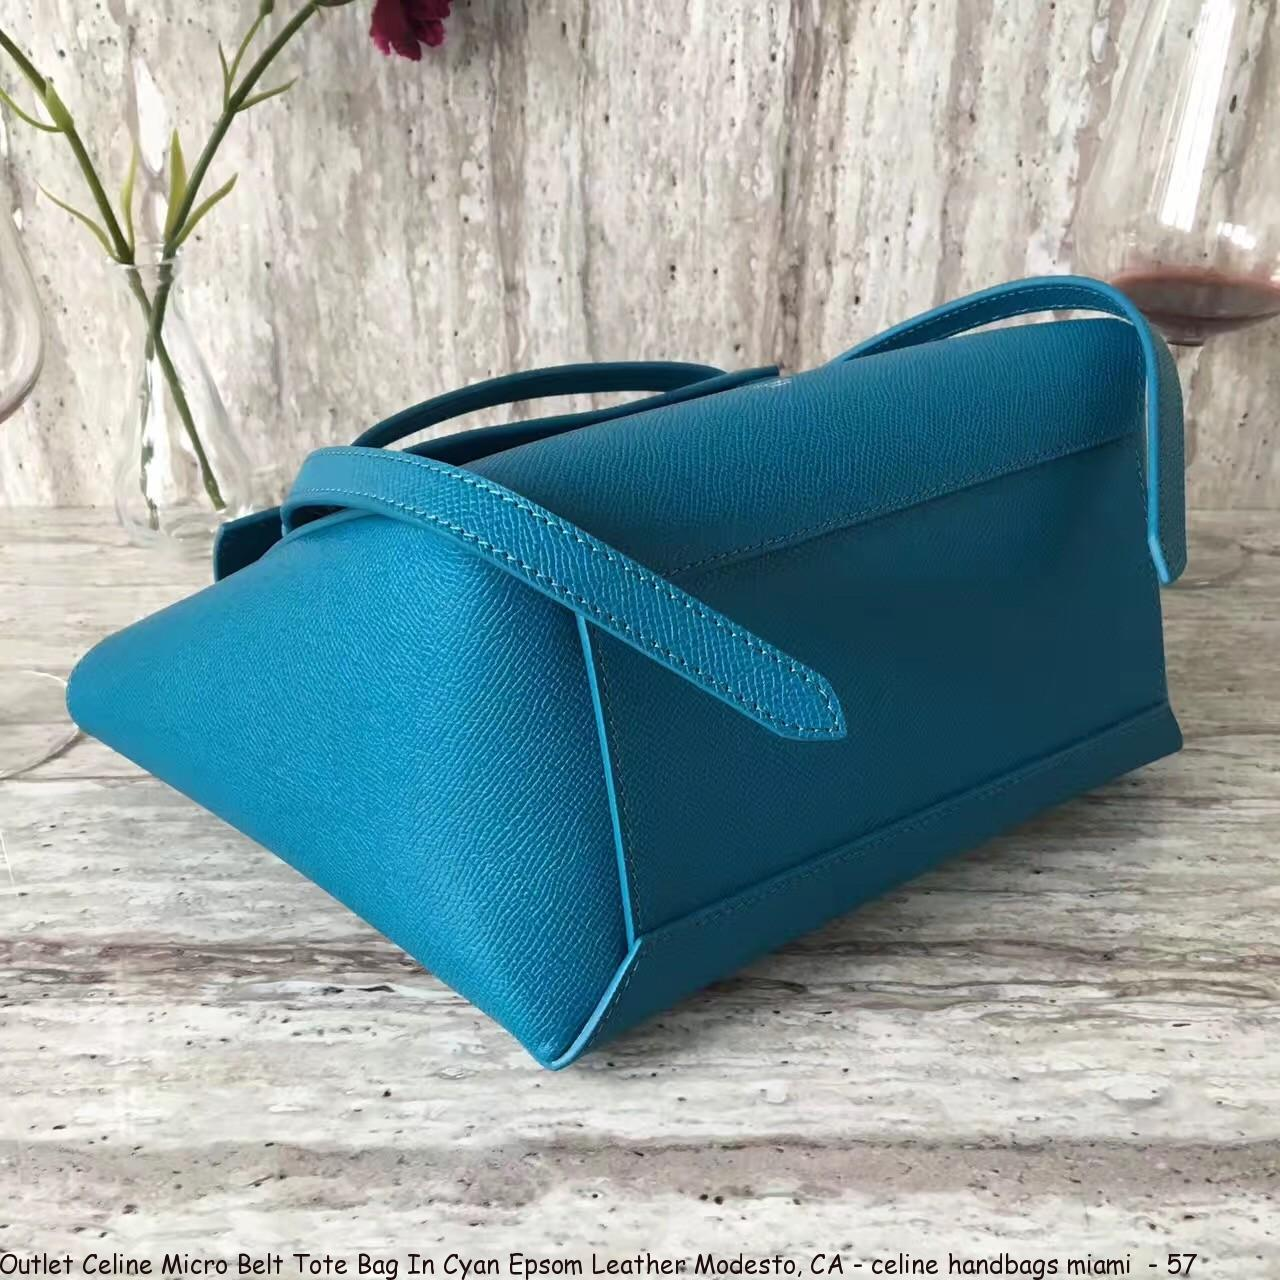 2b5a422a37 Outlet Celine Micro Belt Tote Bag In Cyan Epsom Leather Modesto